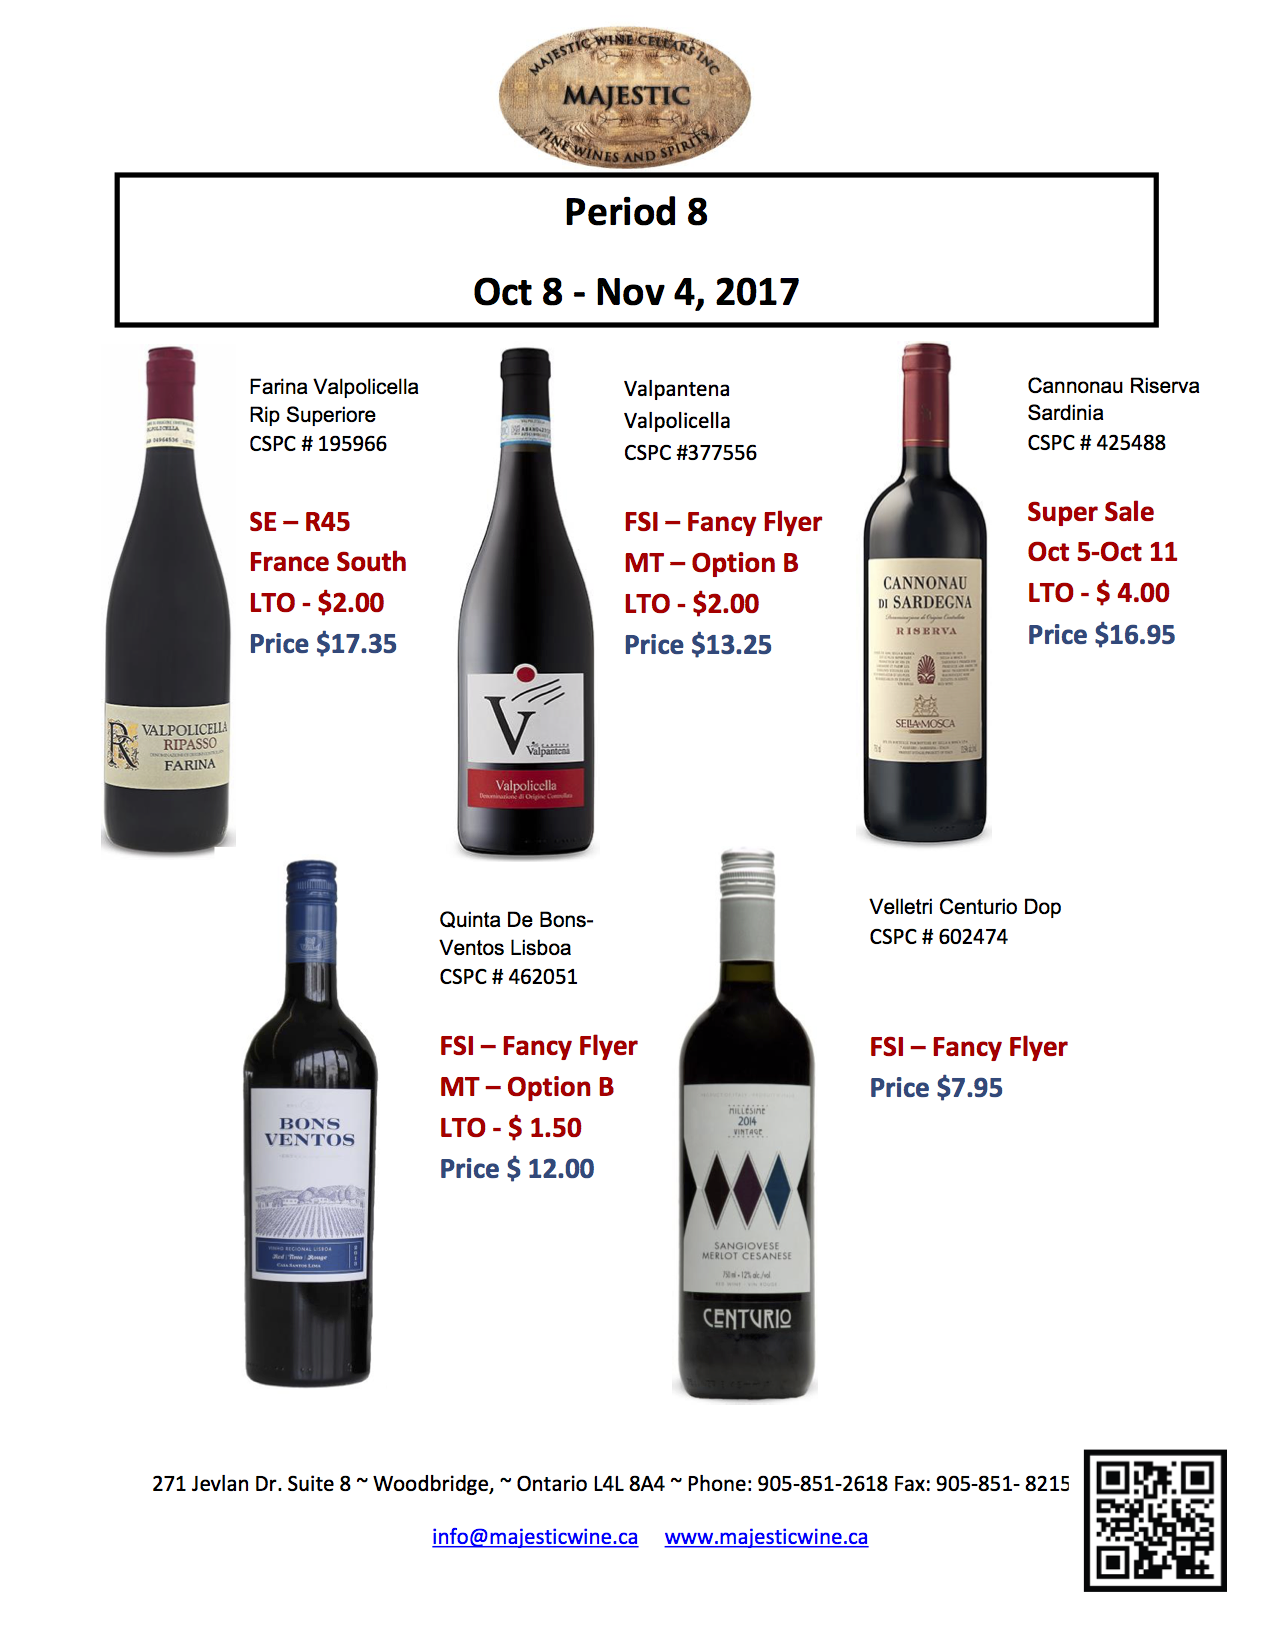 Period 8: October 8th - November 4th Promotion